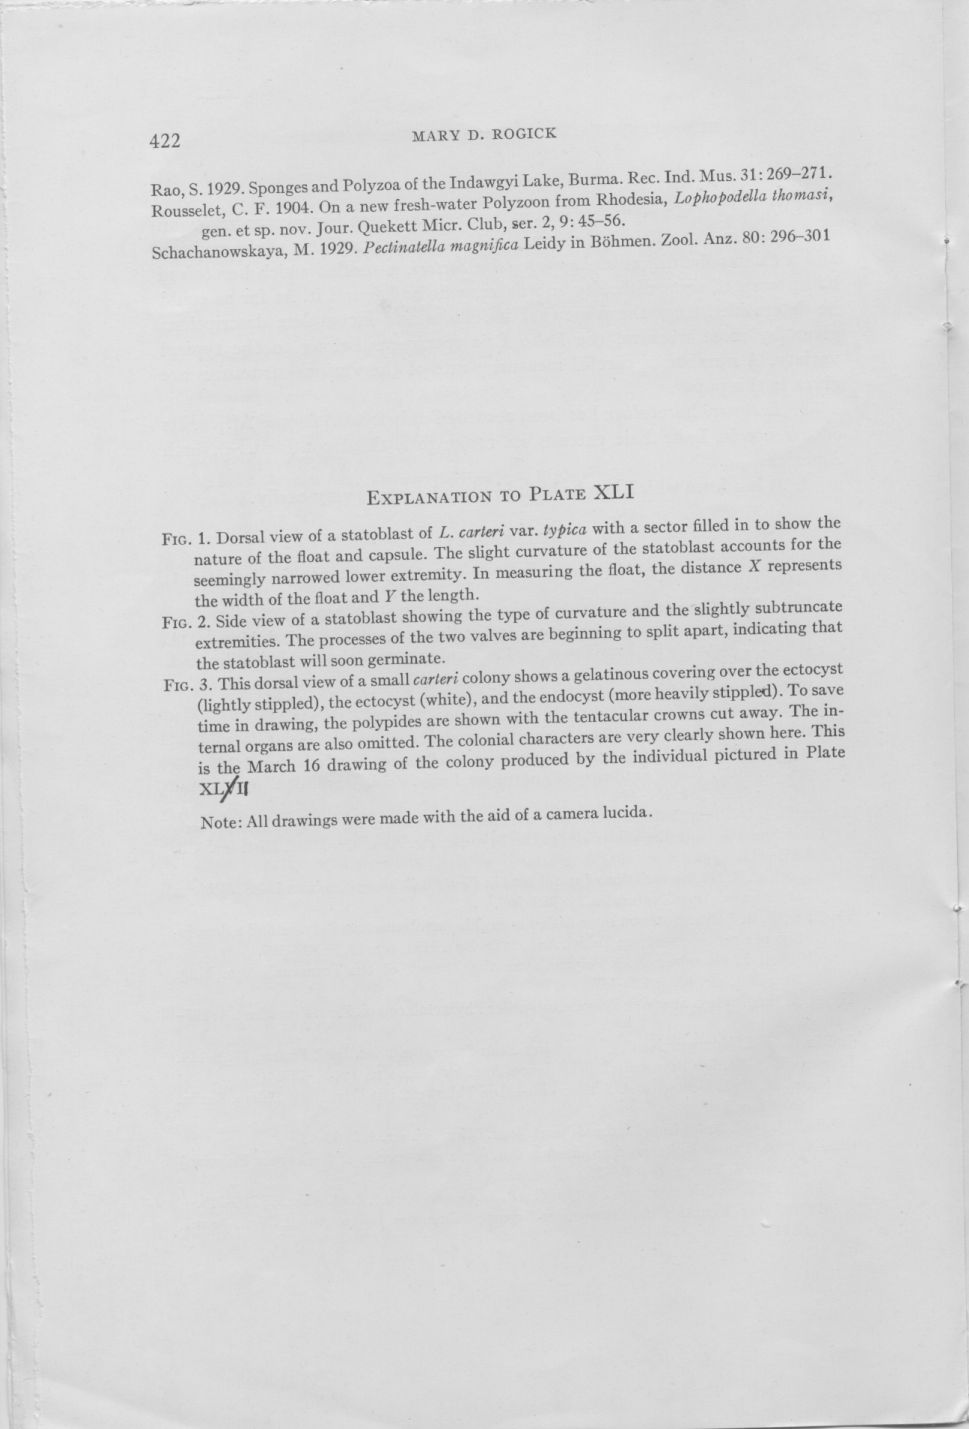 The occurrence of Lophopodella carteri page 8